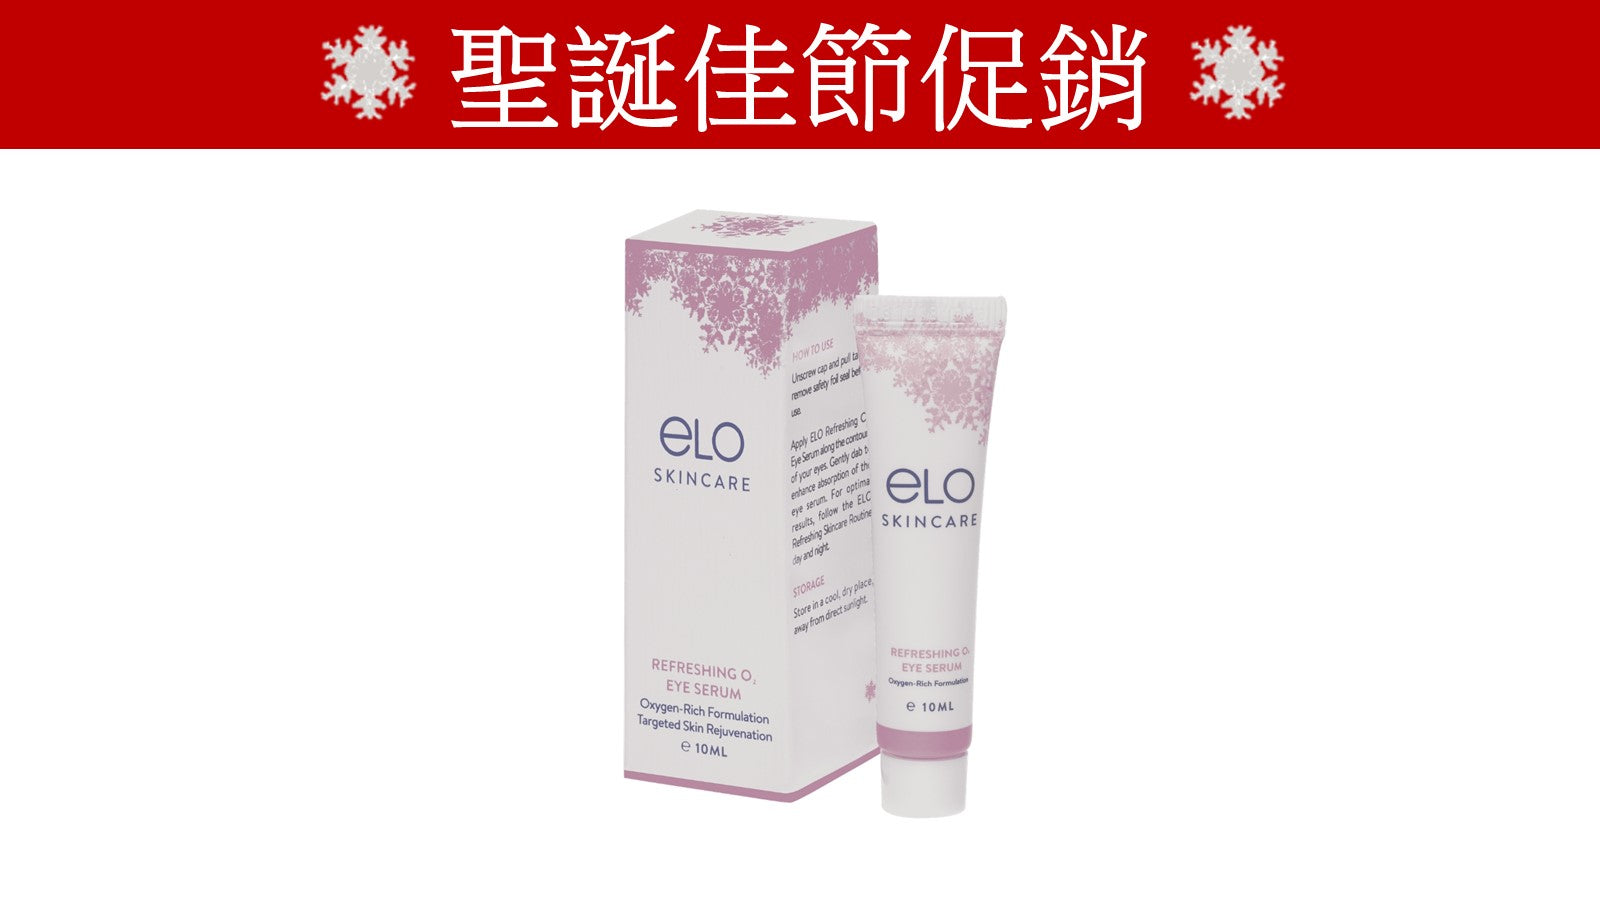 ELO Refreshing O<sub>2</sub> Eye Serum (10 ml)